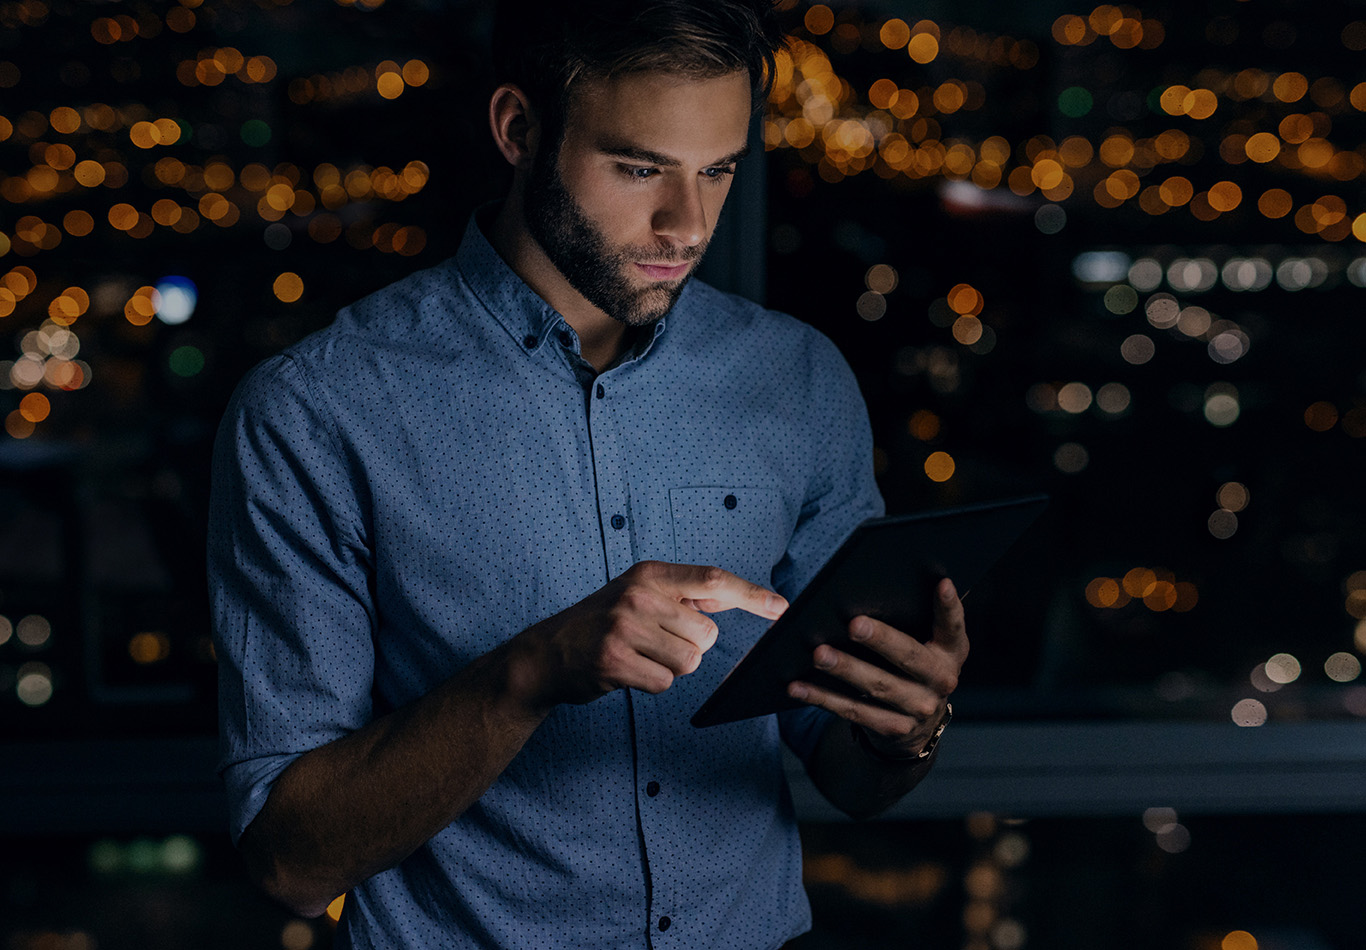 A man with facial hair is looking at a tablet at night